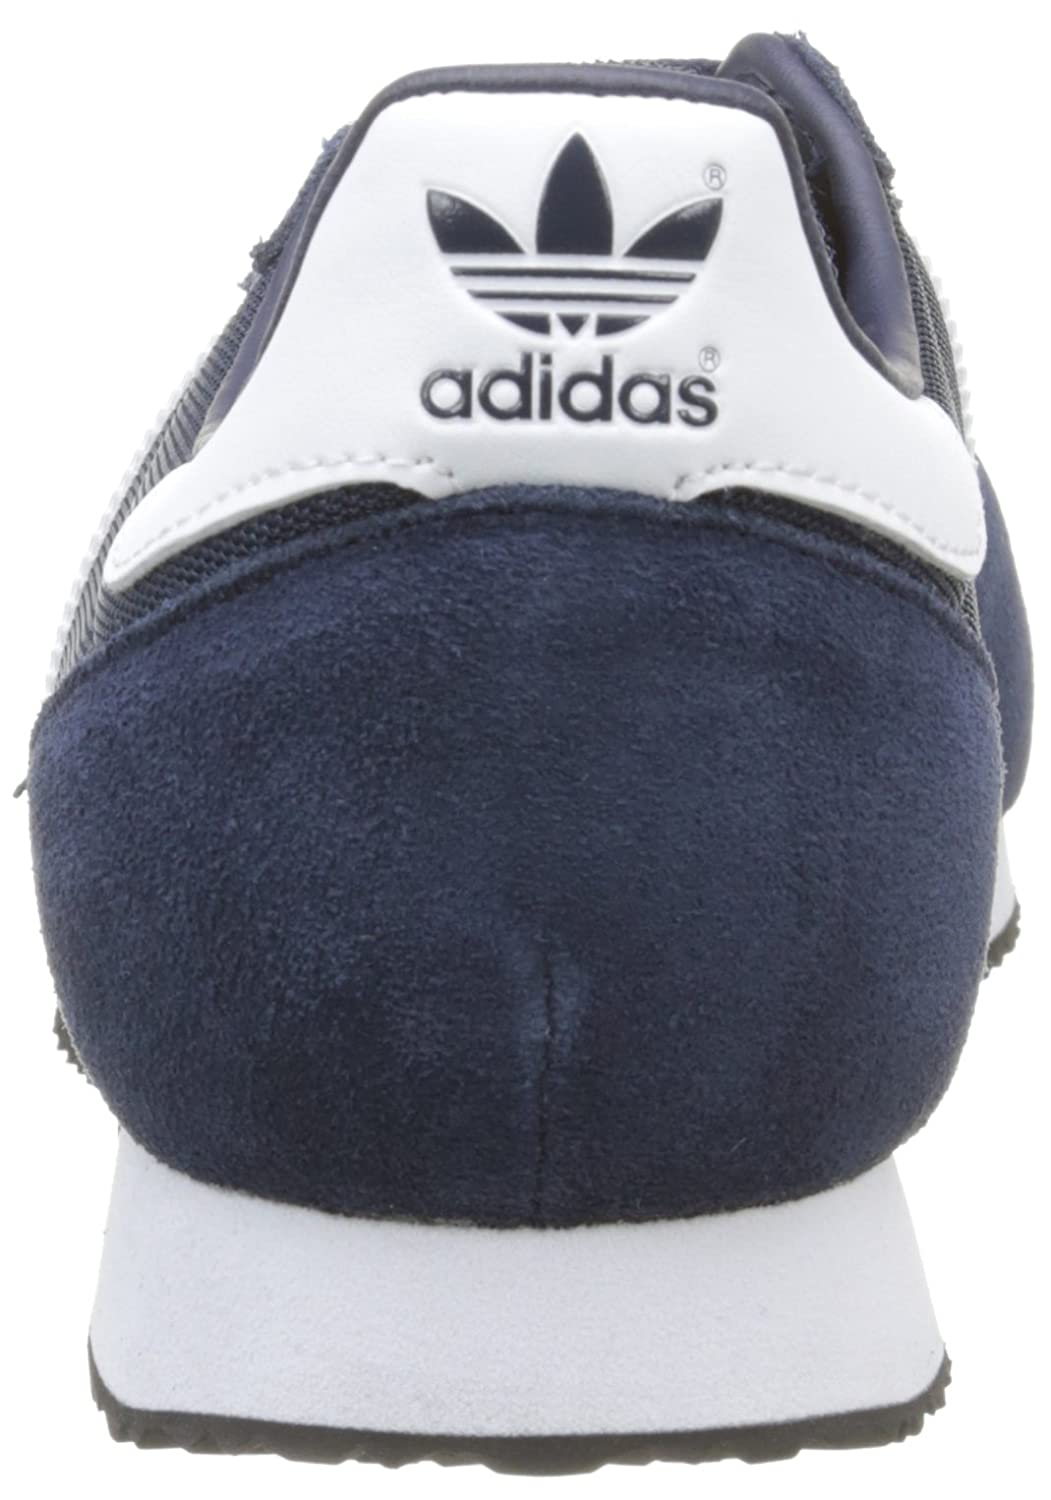 Adidas Zx Racer Mens Trainers Shoes Bags Blue Black